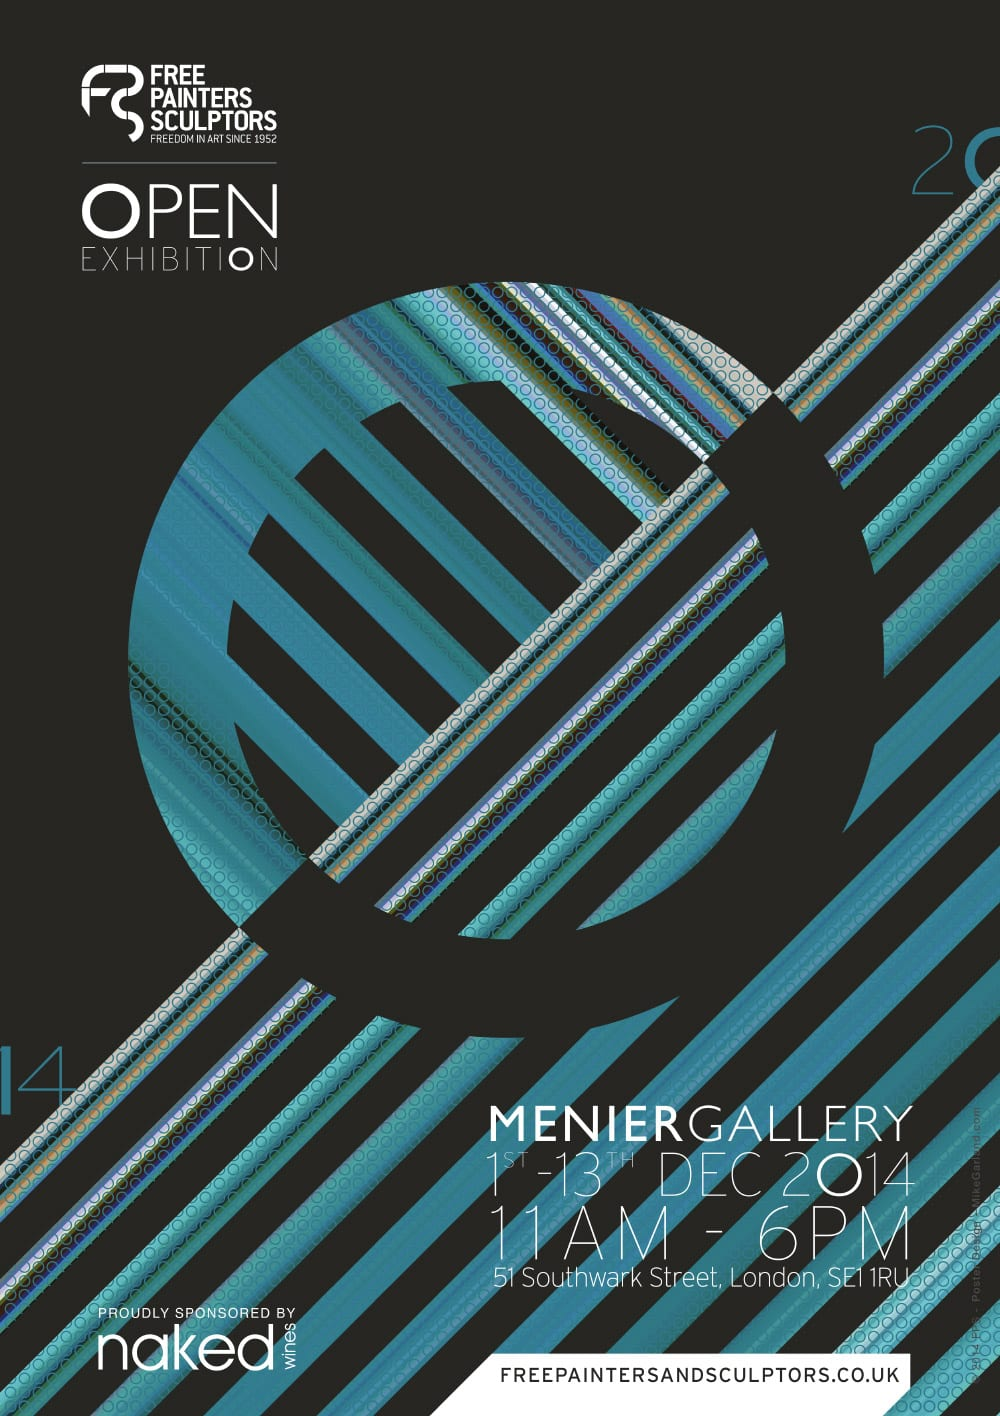 Mike-Garland-FPS-Menier-Gallery-Open-Exhibition-Poster-2014